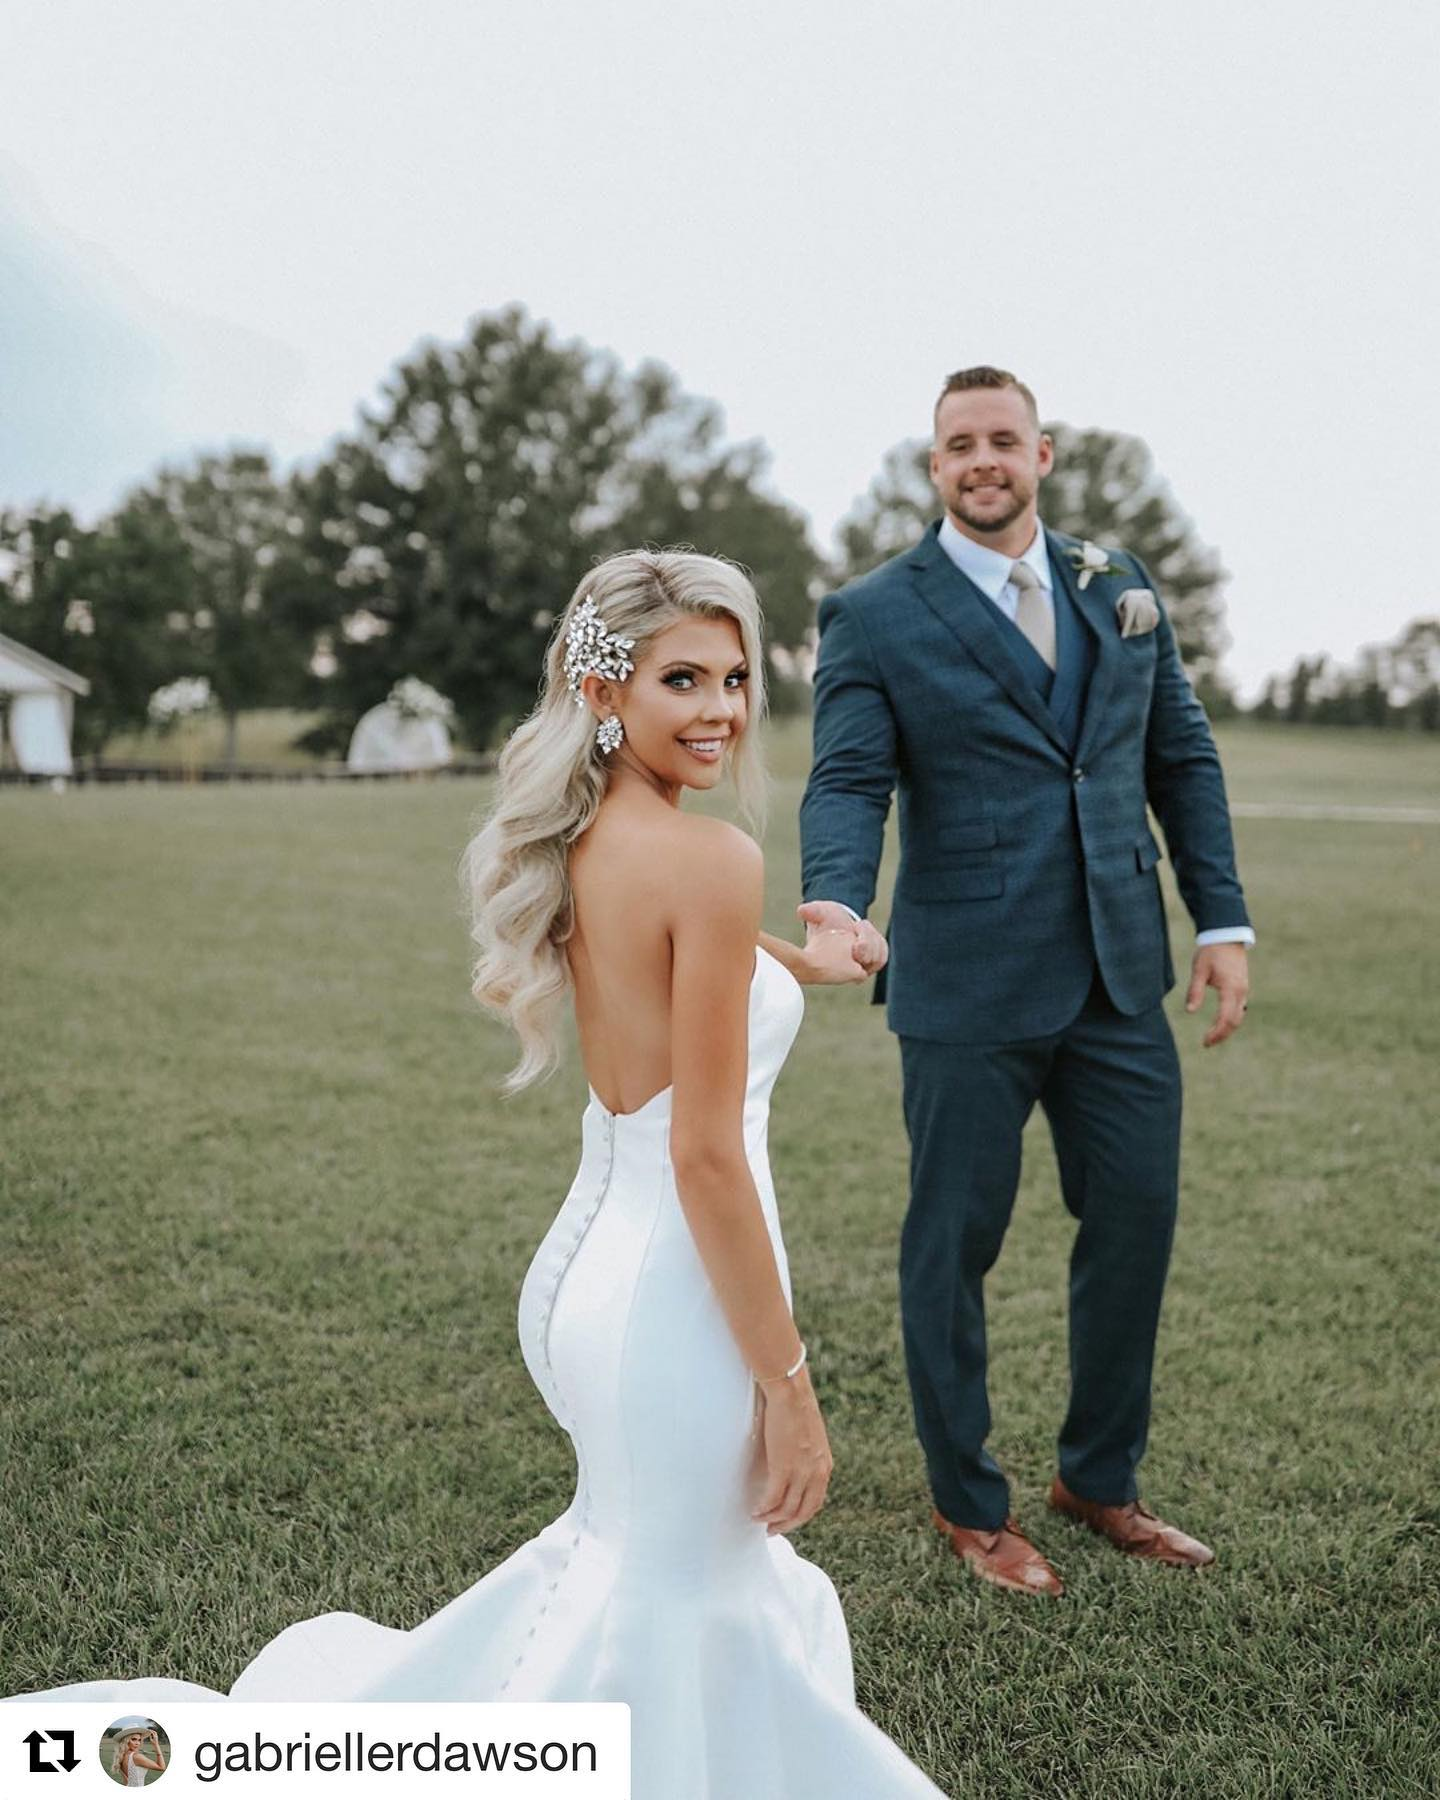 Bride with groom in slate blue tuxedo from Tuxedos to Geaux